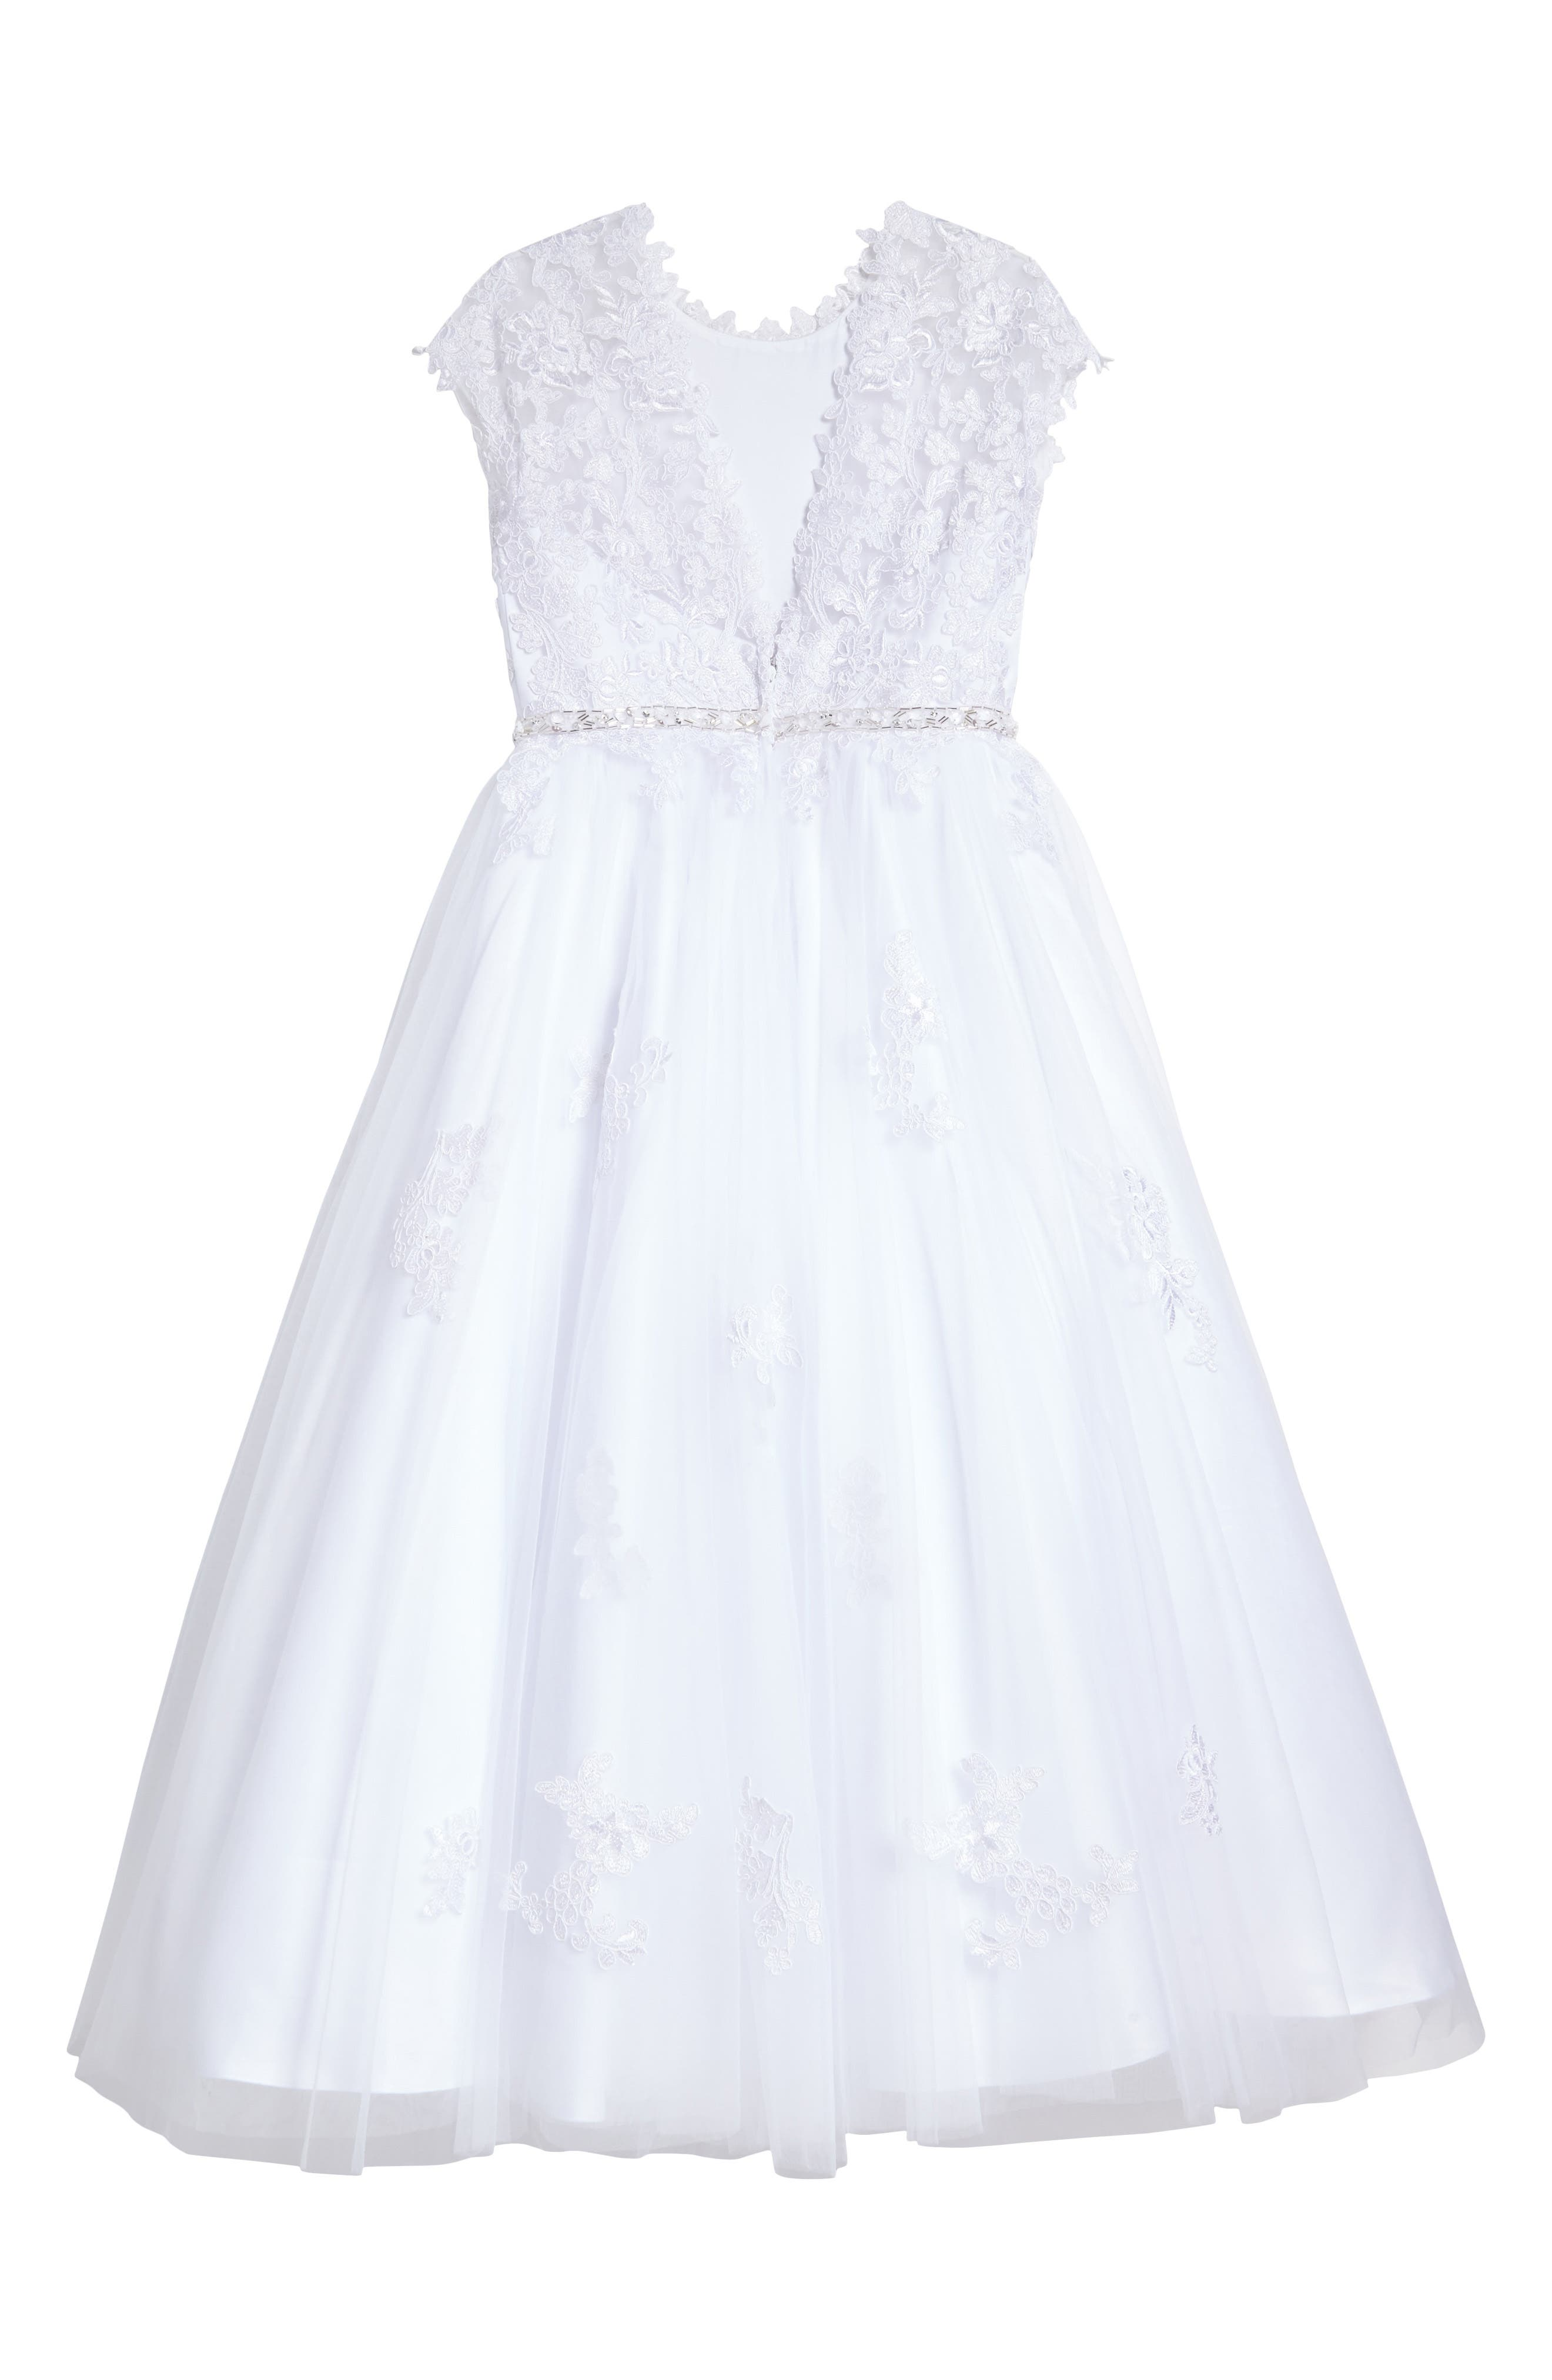 Lace Appliqué Tulle First Communion Dress,                             Alternate thumbnail 2, color,                             White